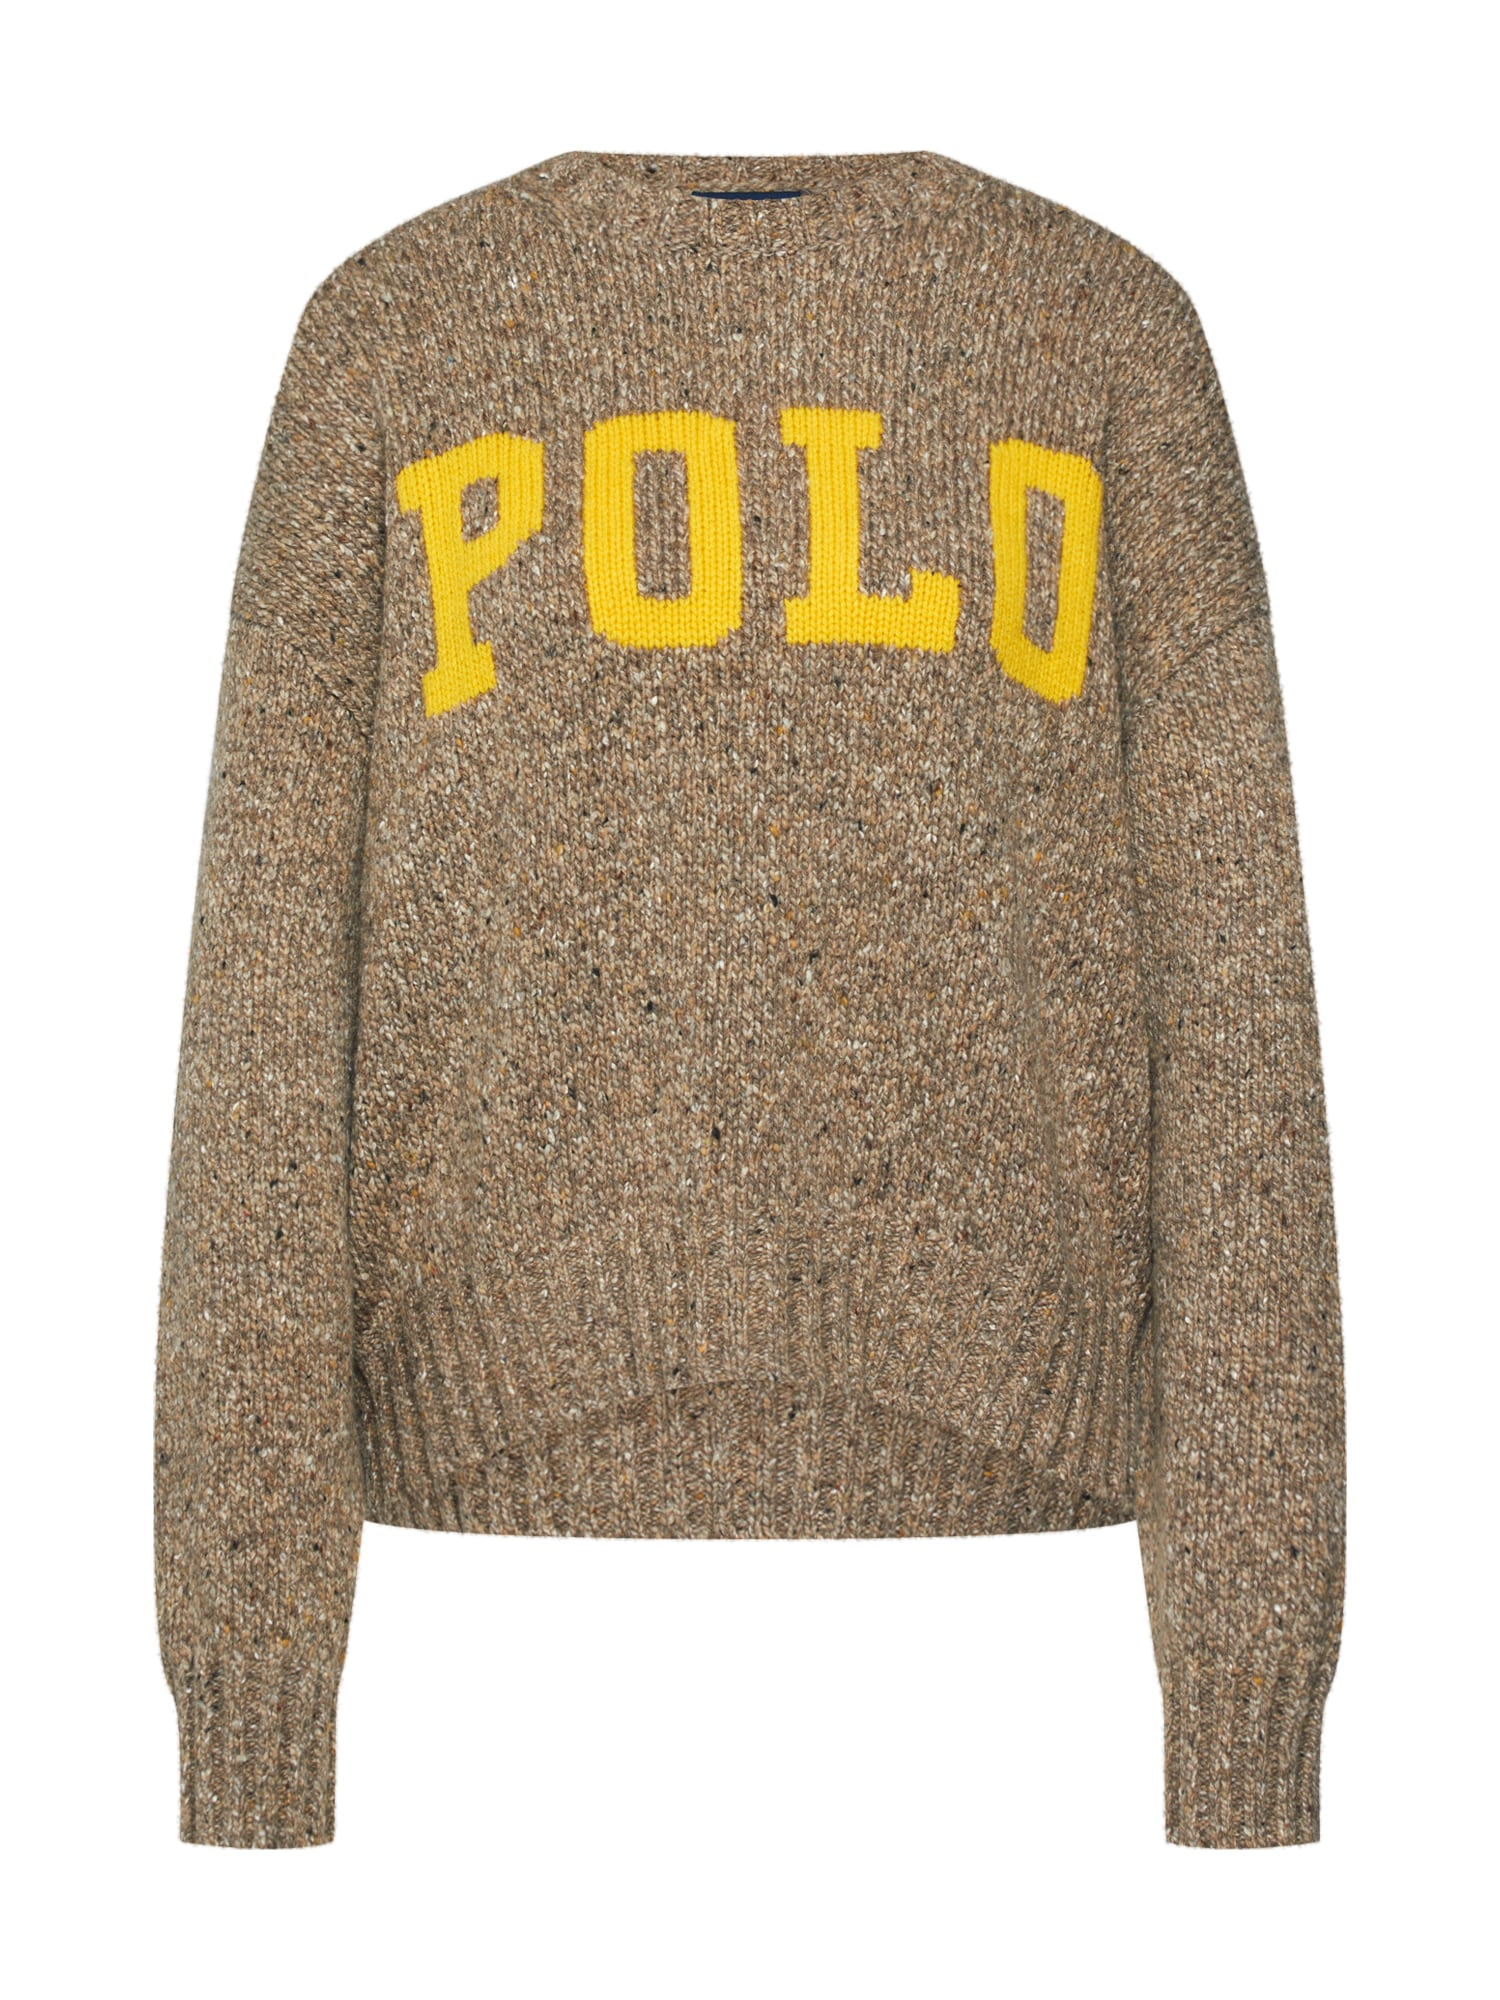 POLO RALPH LAUREN Svetr LS CN-LONG SLEEVE-SWEATER béžová Polo Ralph Lauren